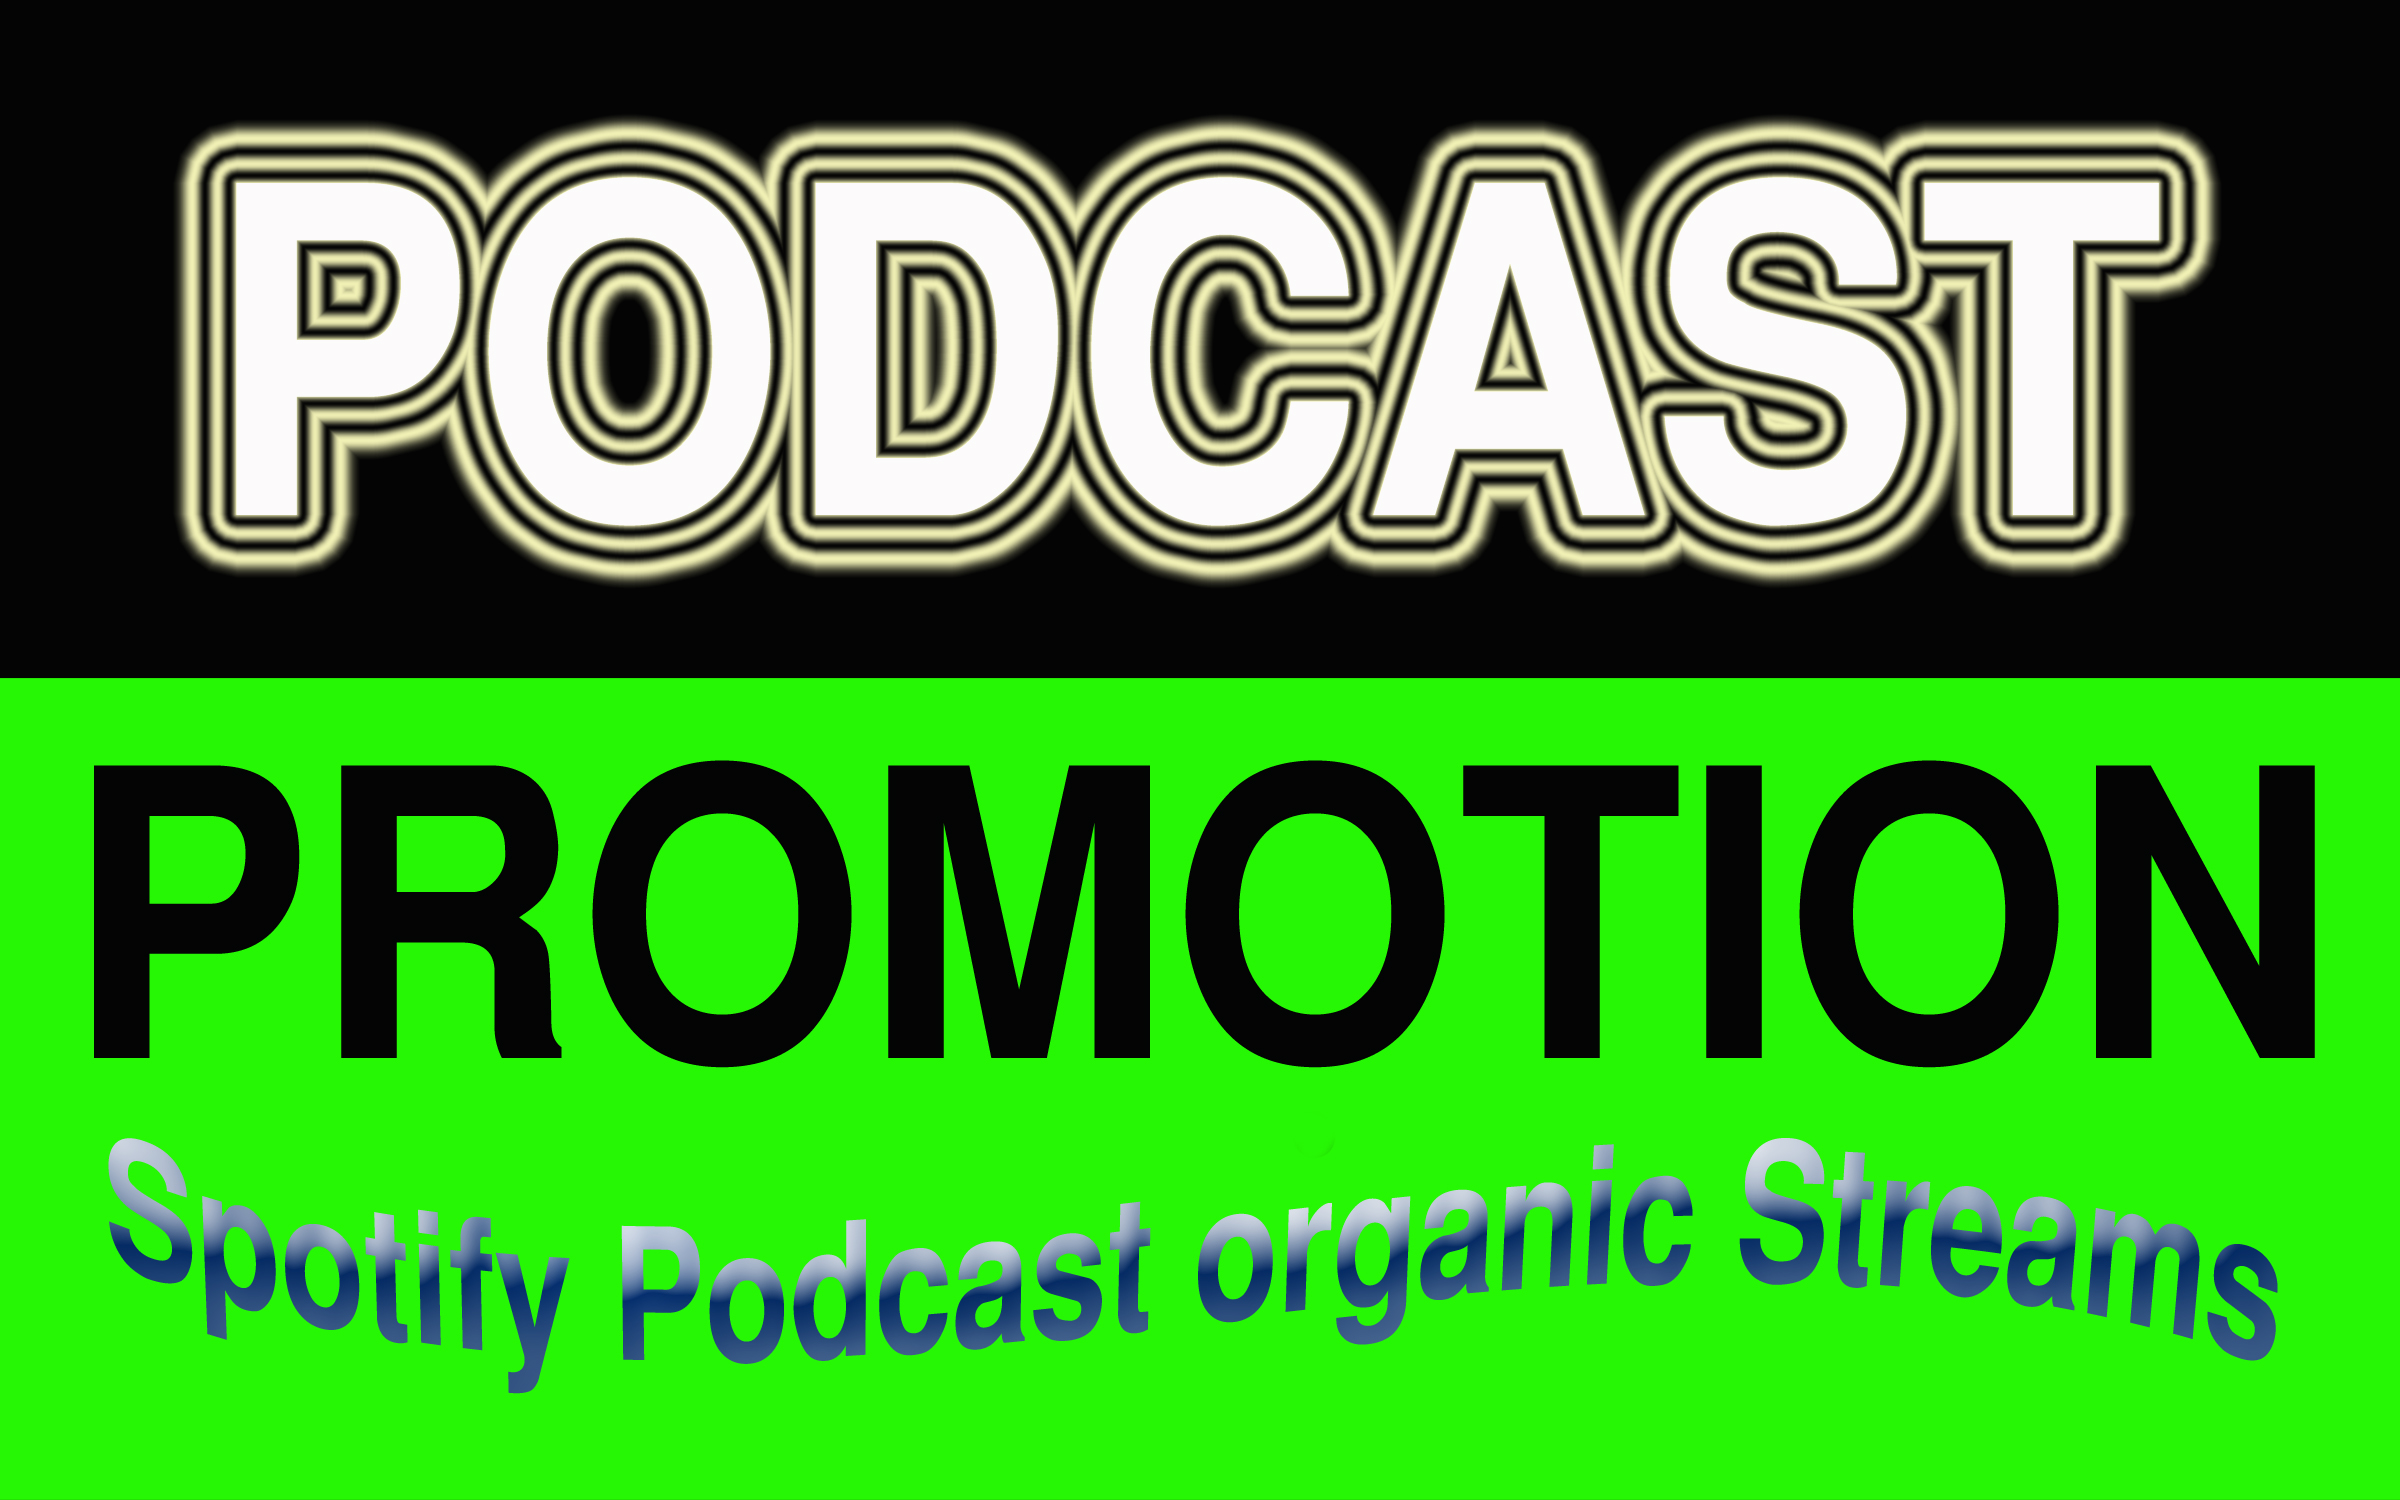 Do organic promotion your podcast advertiseing with increase to popularity listen